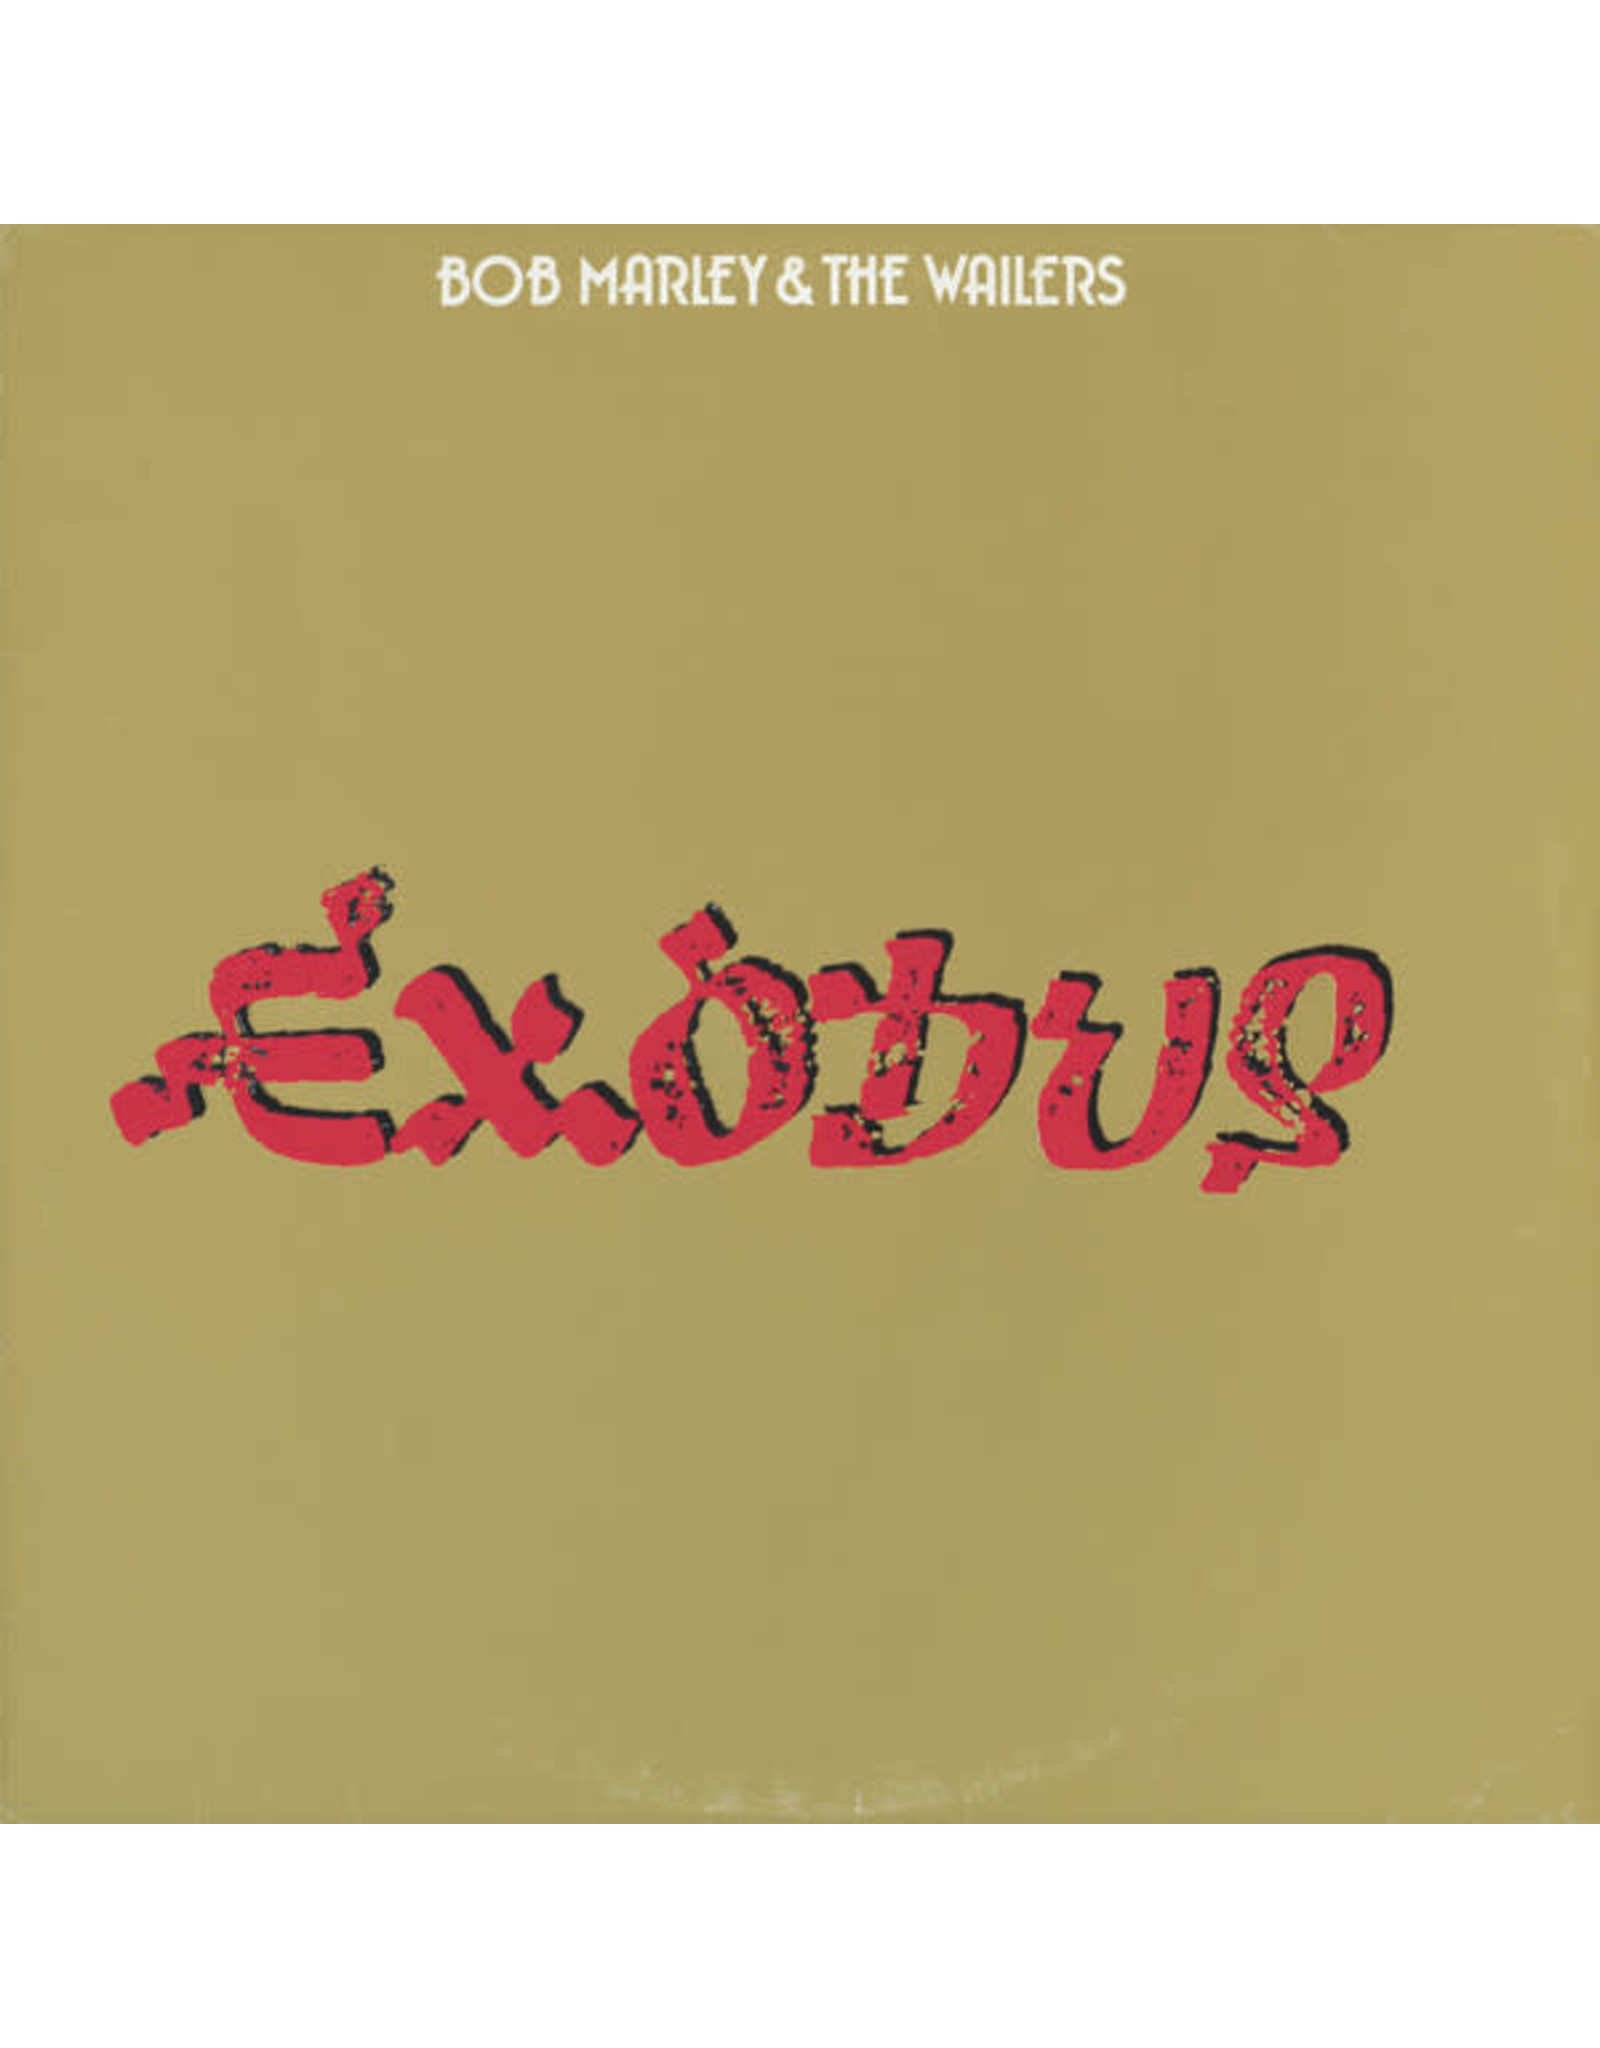 Marley, Bob & The Wailers - Exodus LP (half speed master)